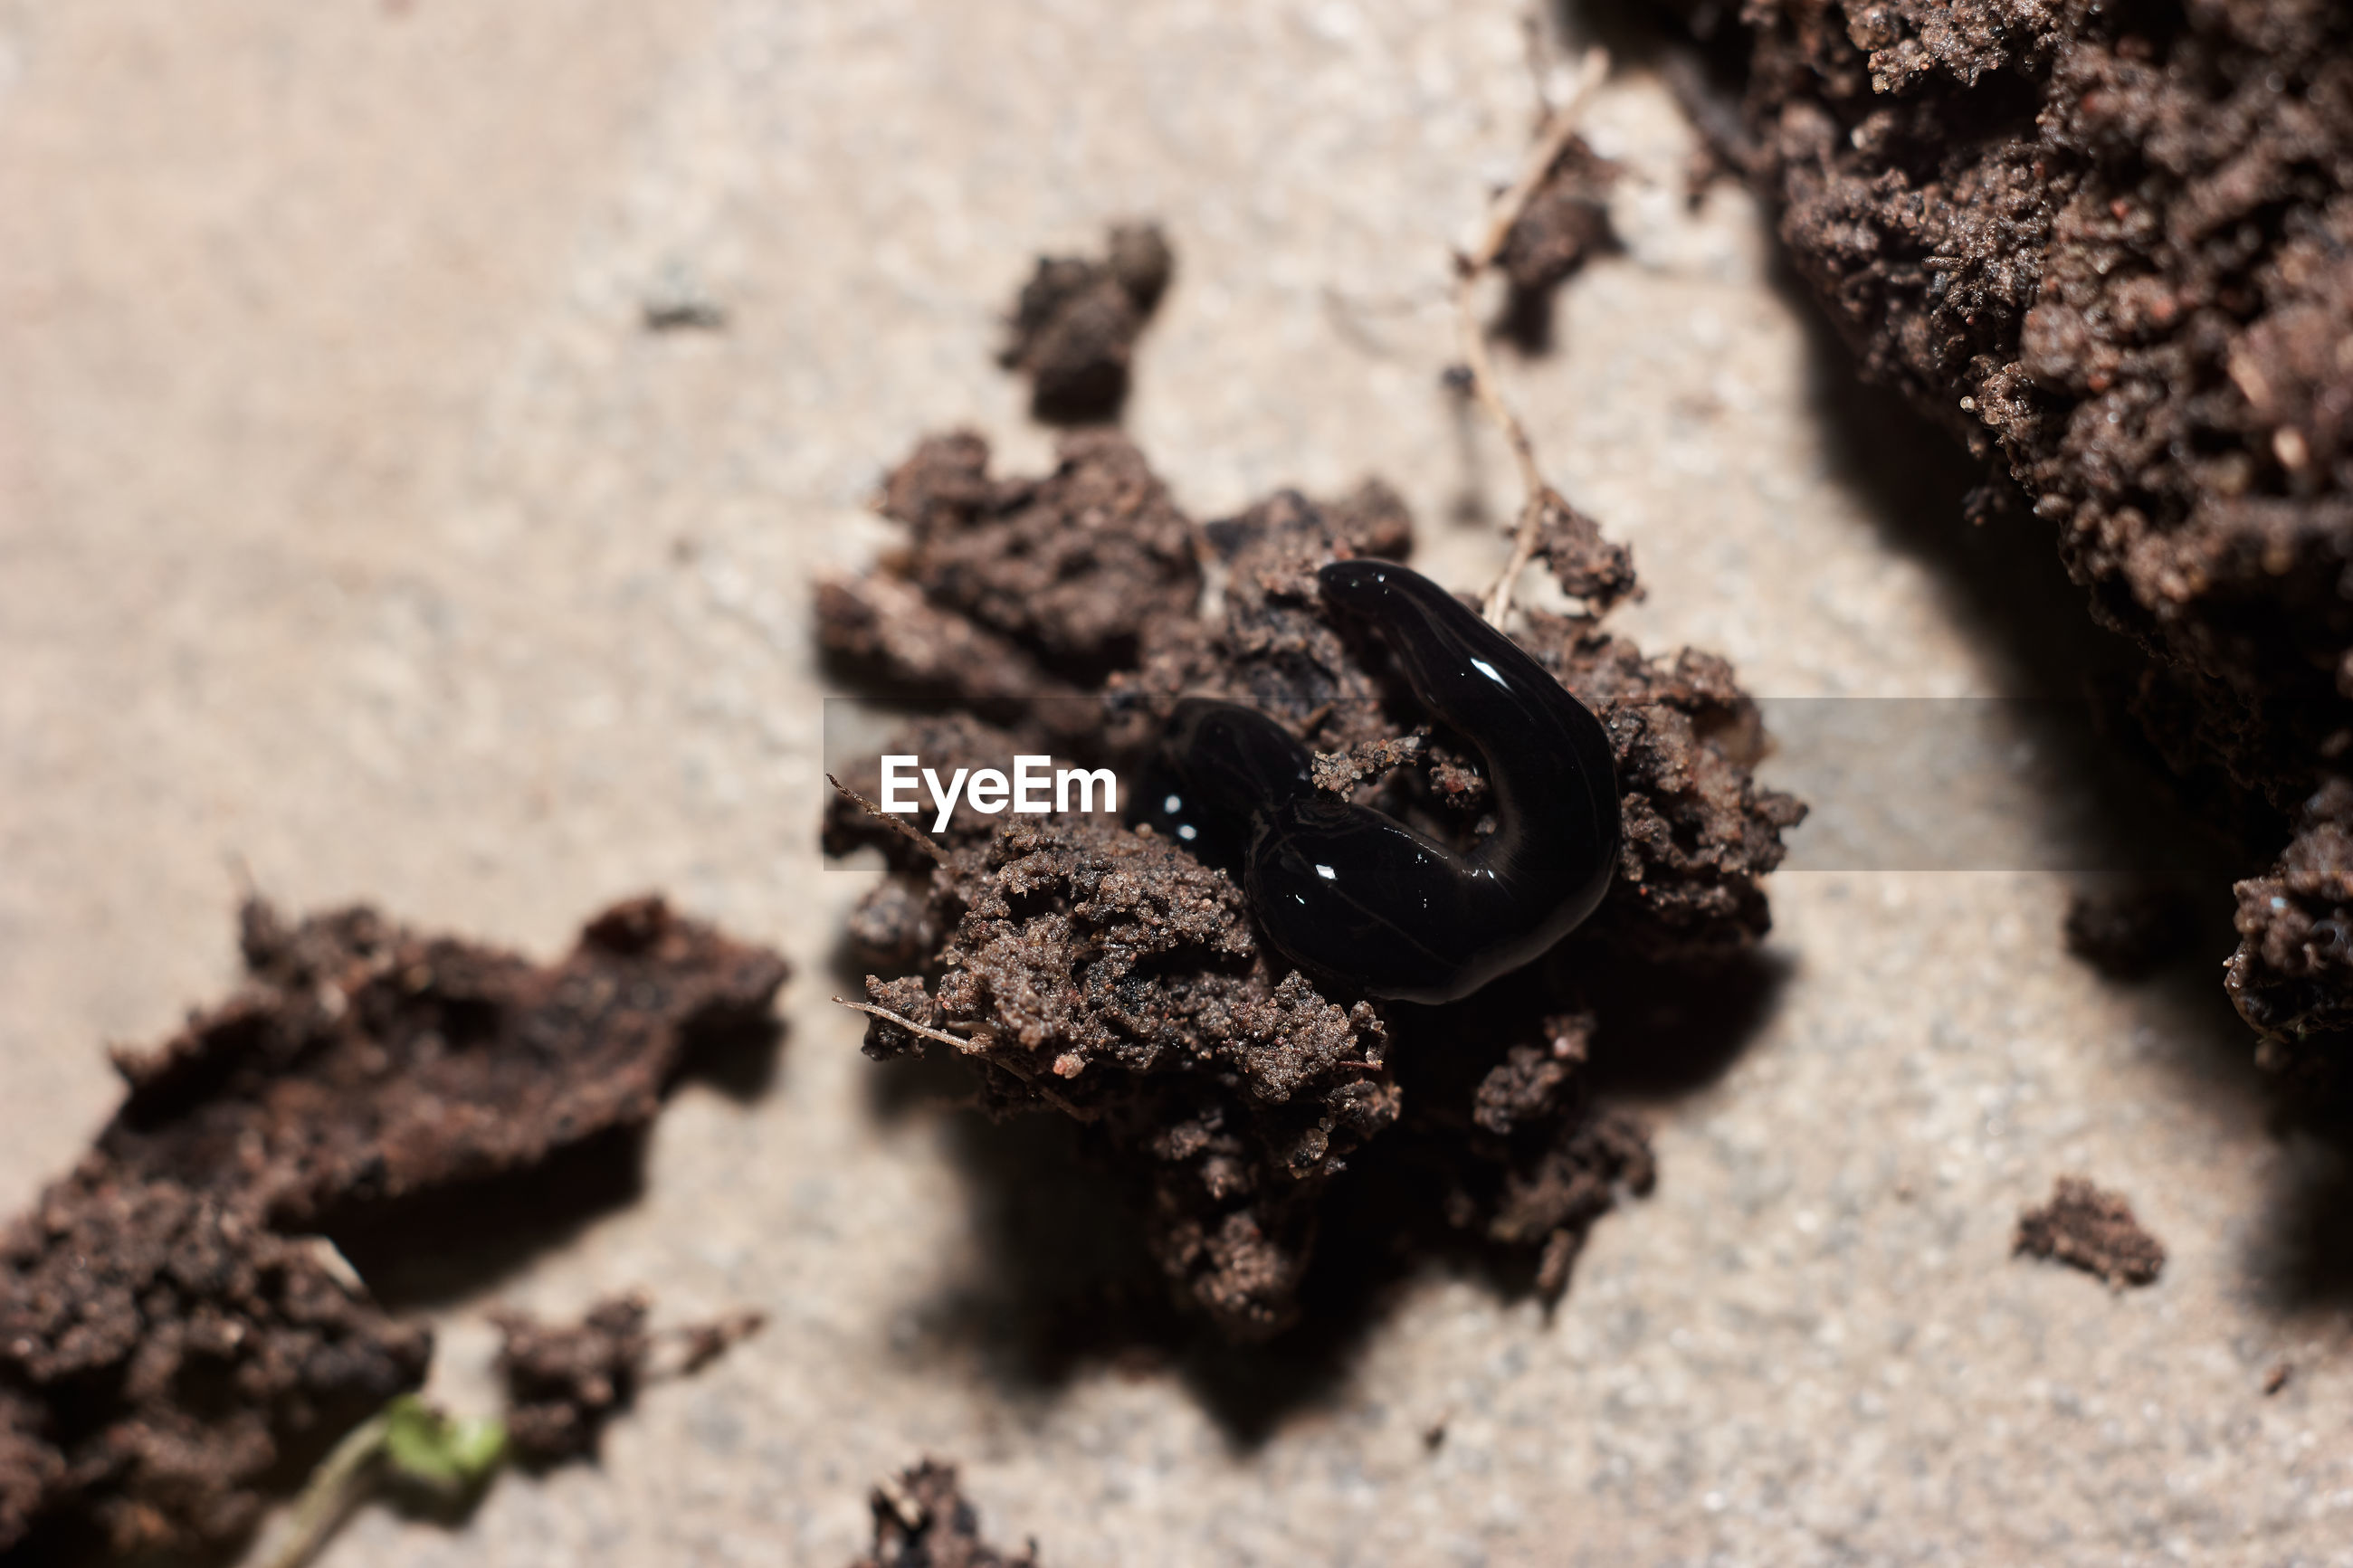 Extreme close-up of worm on soil